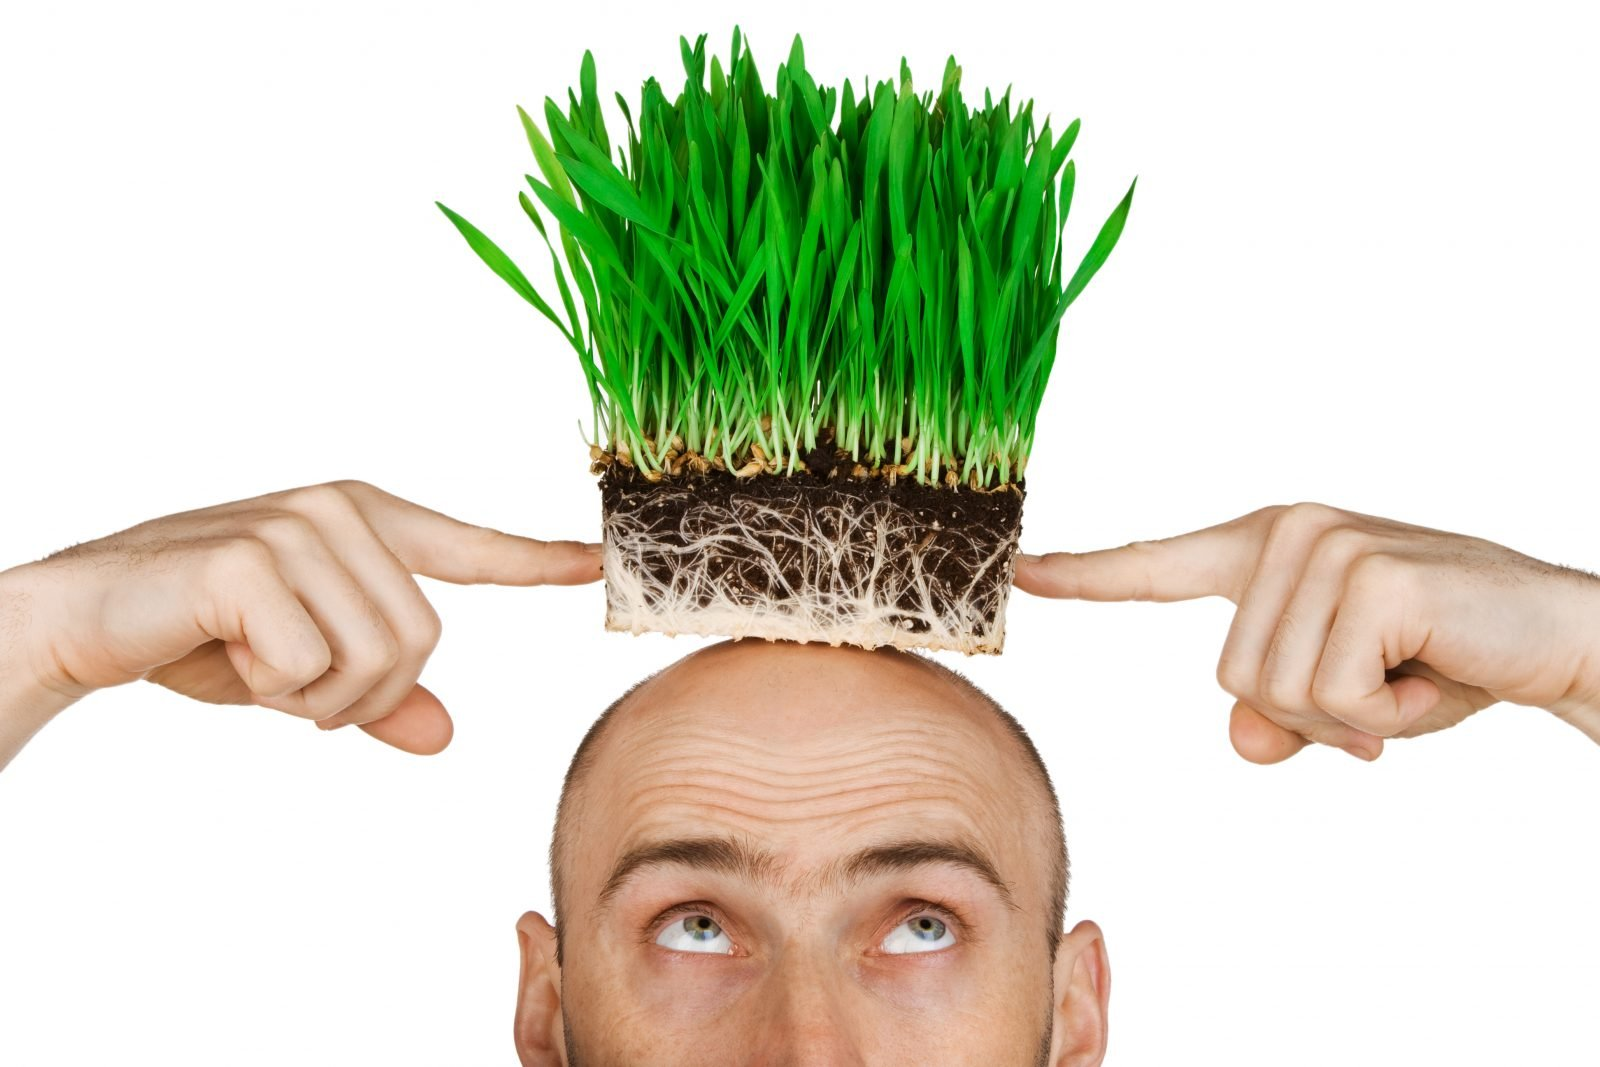 EVERYTHING YOU NEED TO KNOW ABOUT HAIR TRANSPLANT